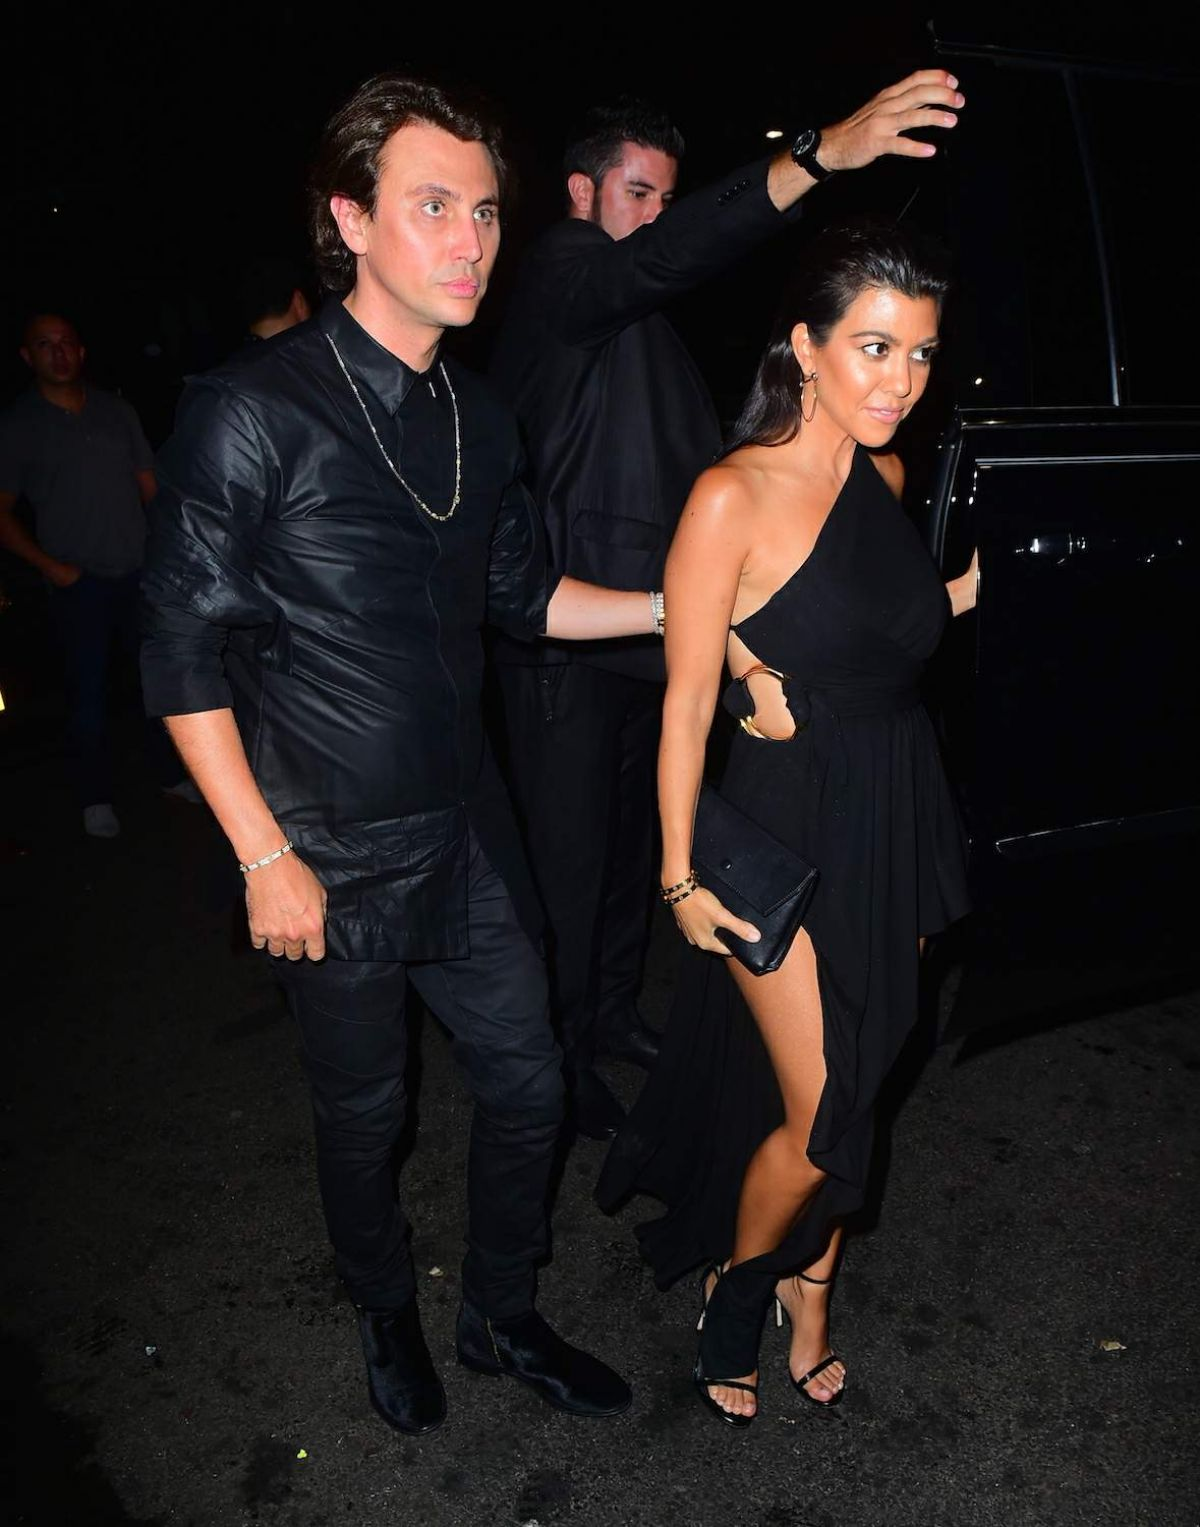 Kourtney Kardashian Night Out In New York City